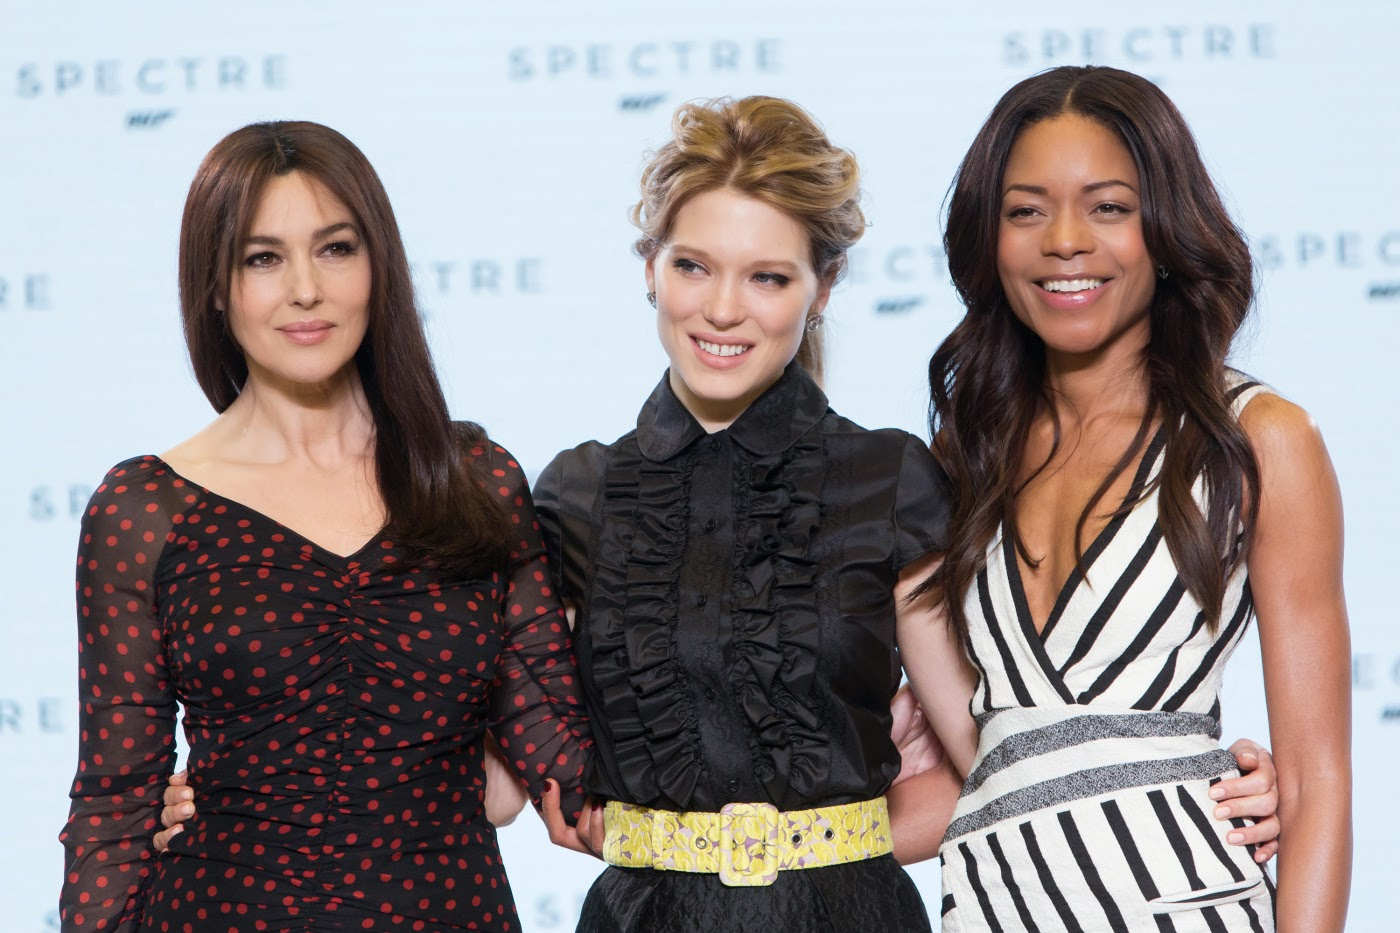 James Bond 007 SPECTRE: Monica Bellucci, Léa Seydoux und Naomie Harris